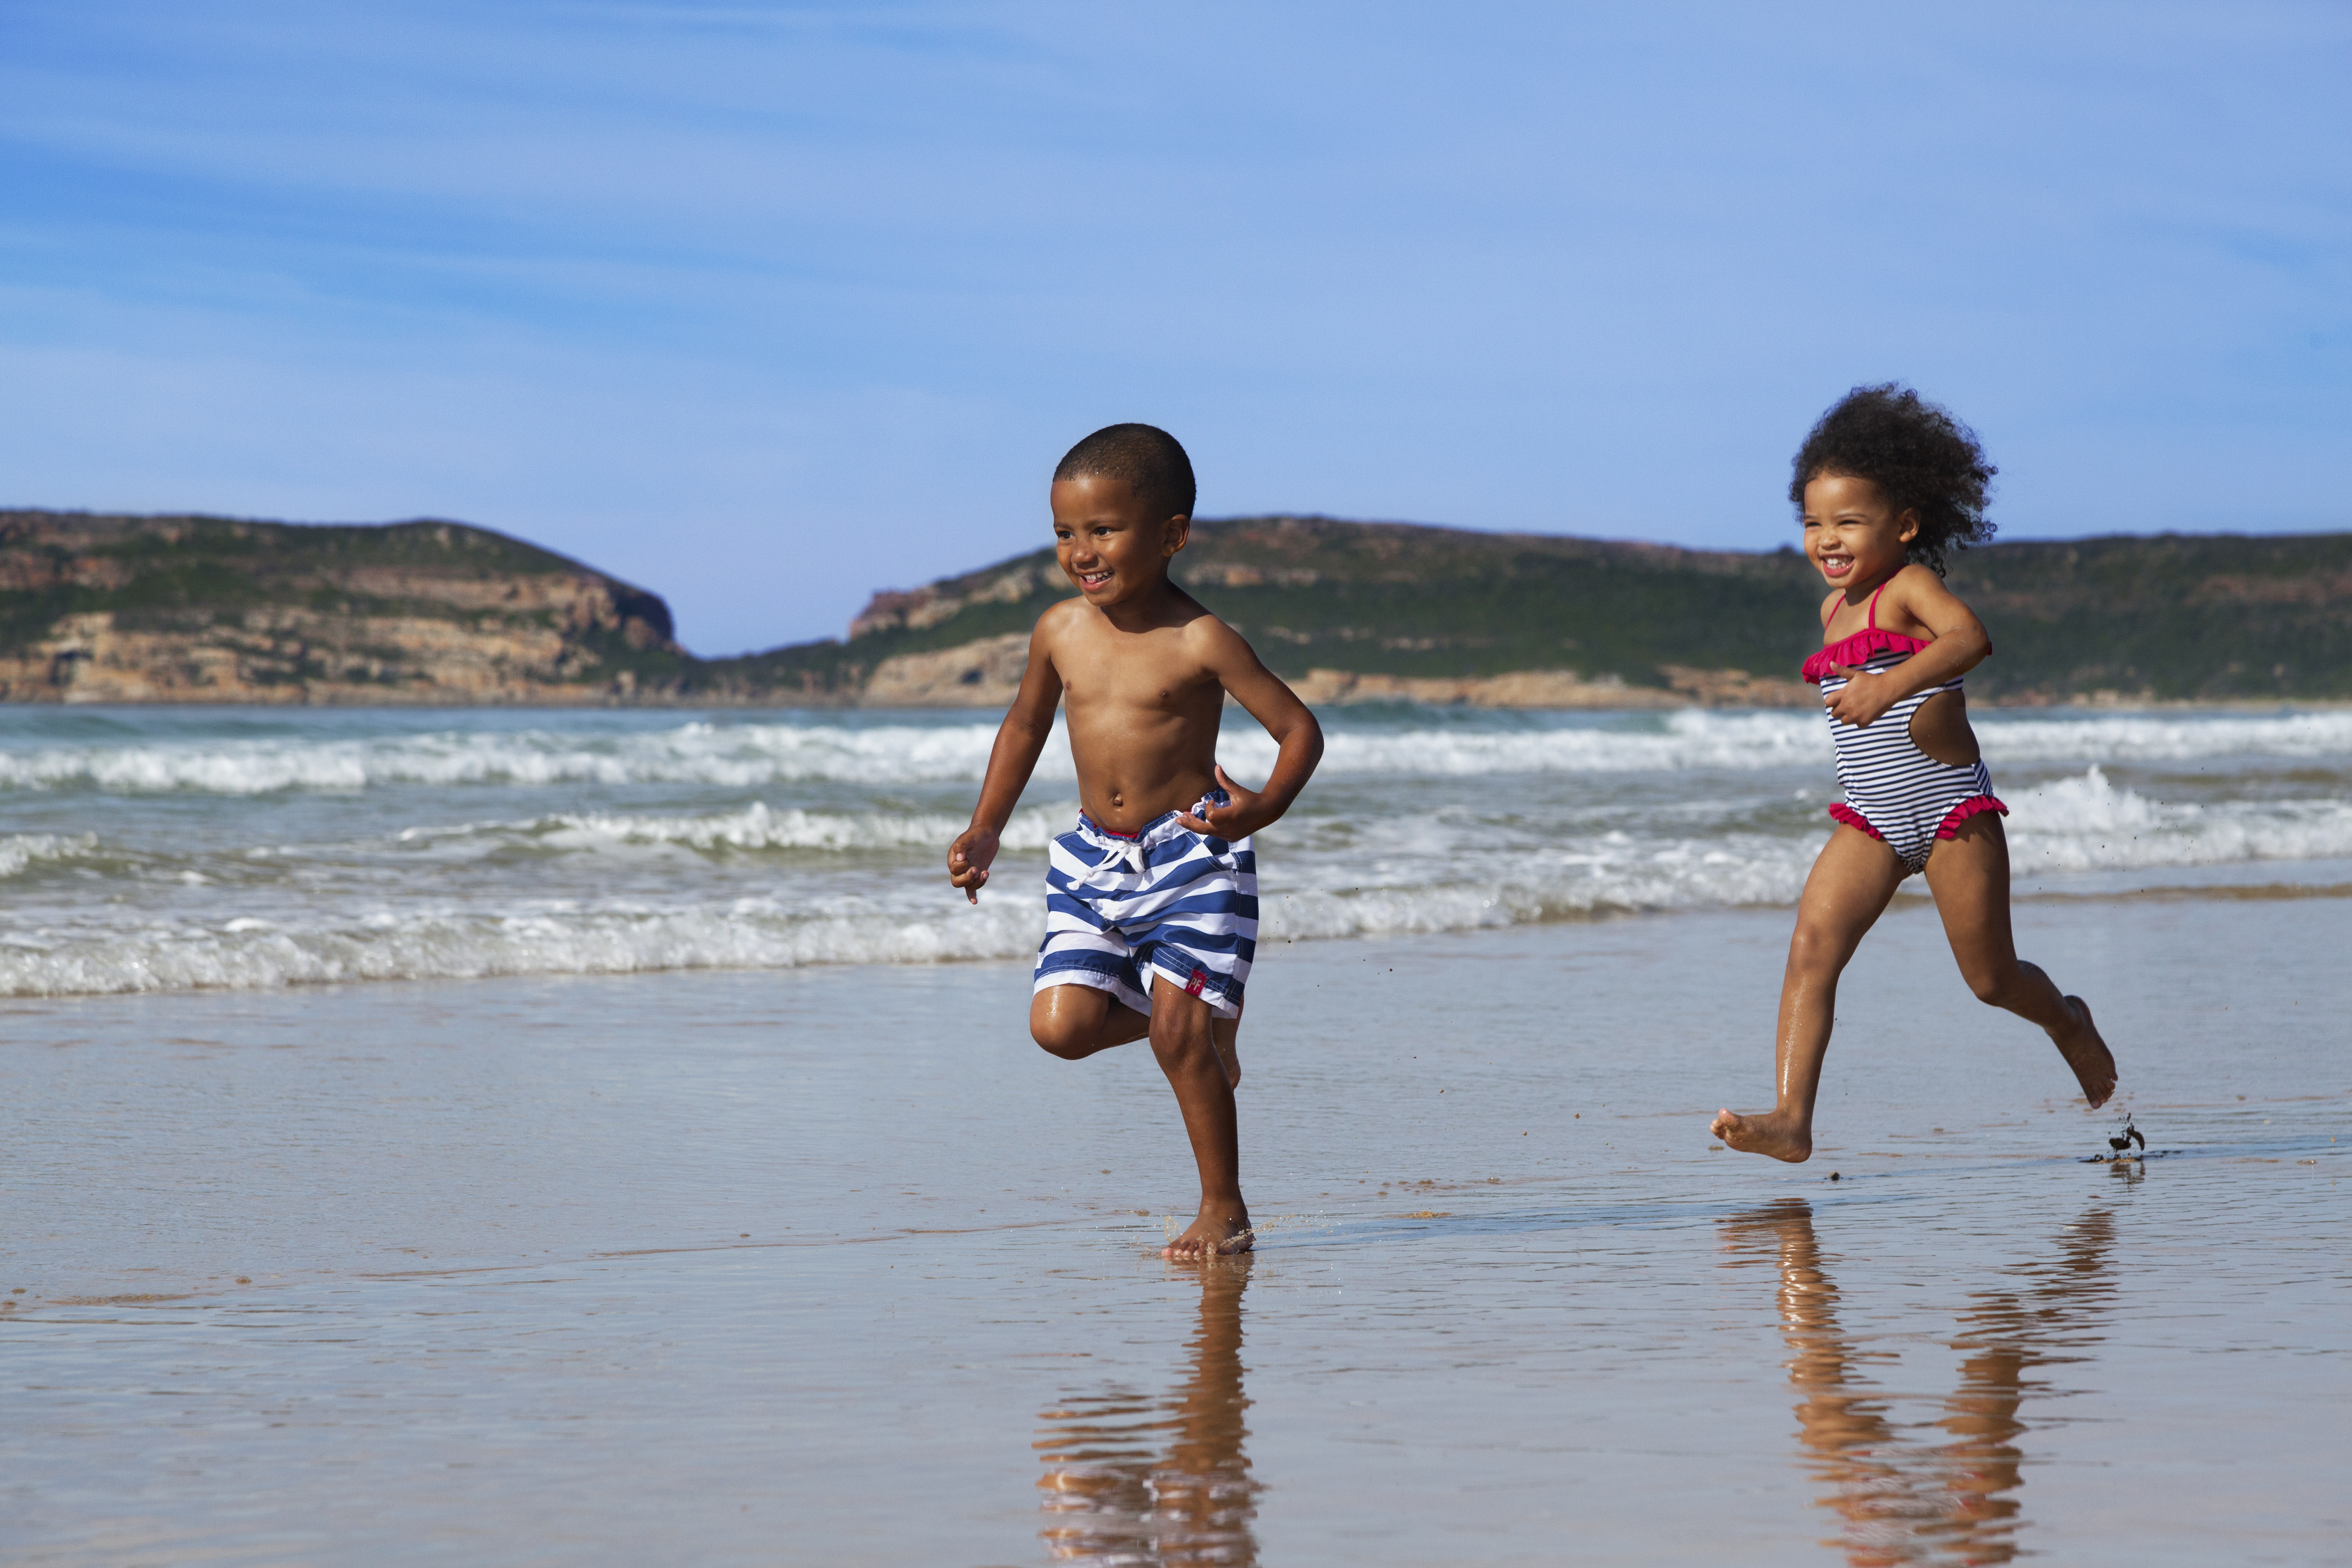 Plett receives 6 Blue Flag Status Beaches & 2 Blue Flag Status Boats